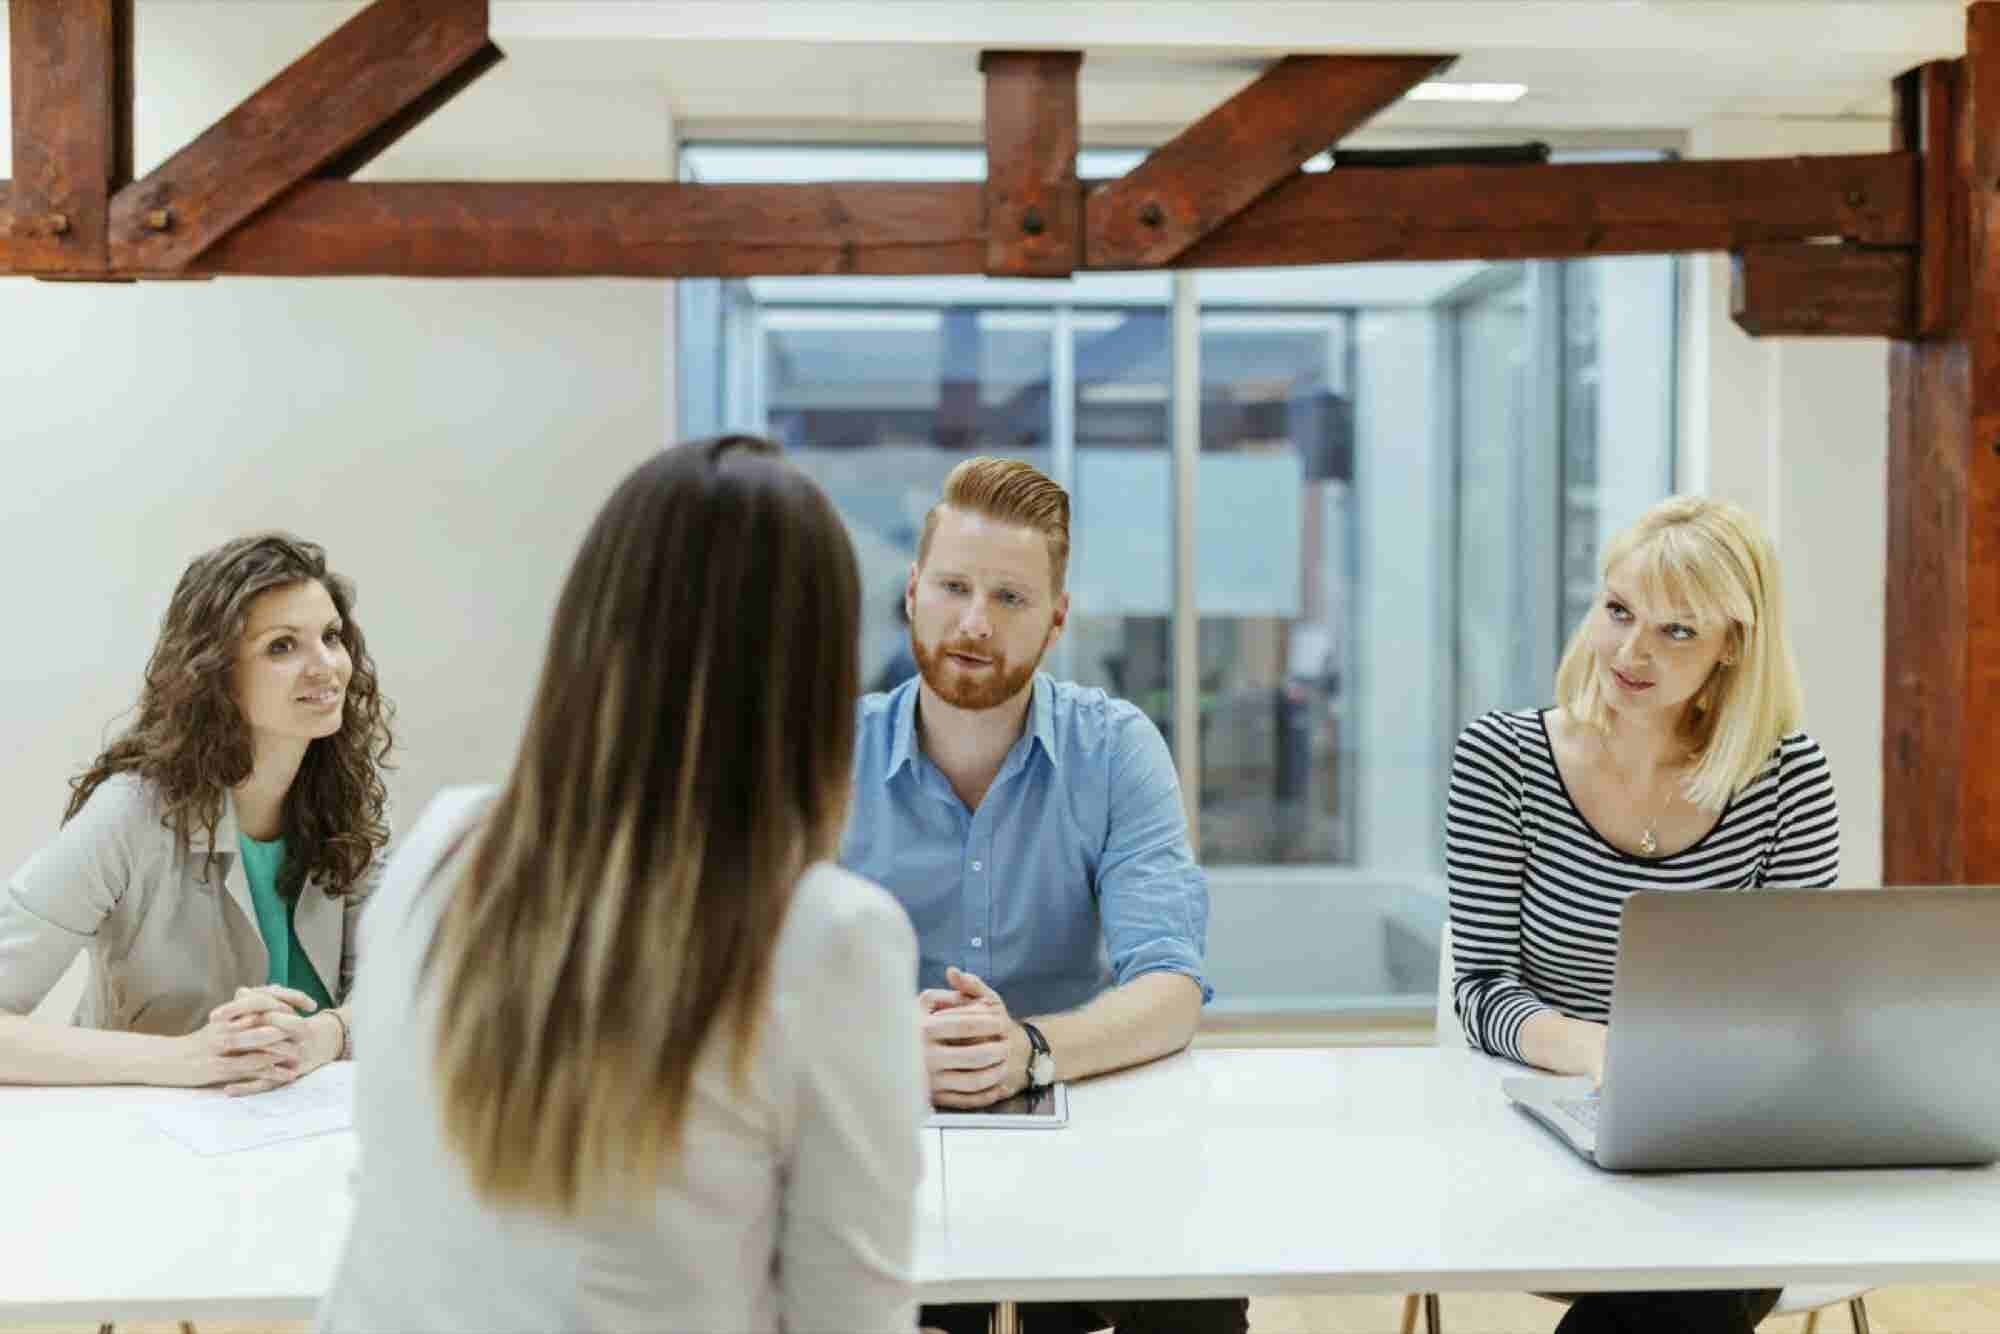 While They Interview You for the Job, You Need to be Interviewing Them as a Potential Employer